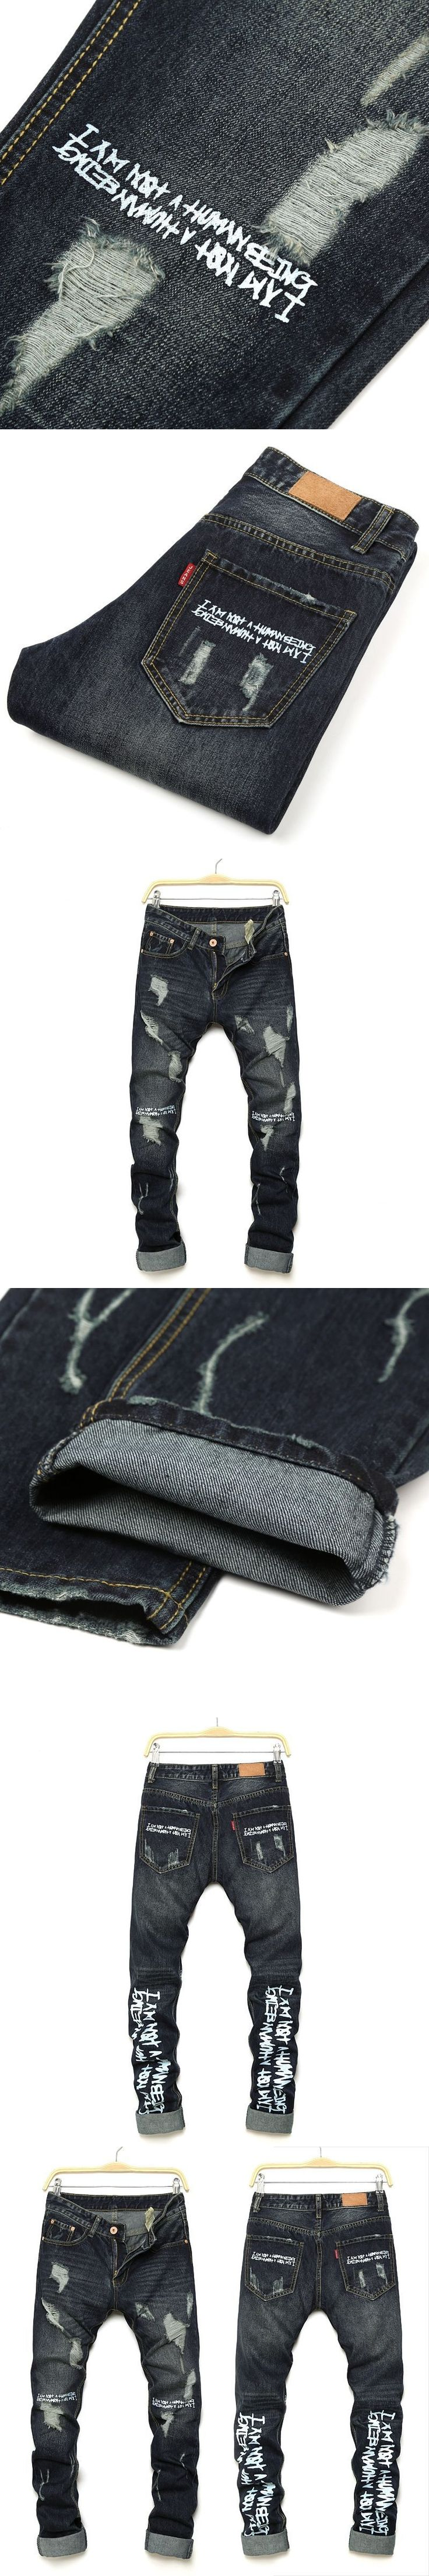 Men's Straight Streetwear Slim Denim Trousers Mens Hole Hip Hop Personalized Letter Printing Ripped Jeans Pants For Men